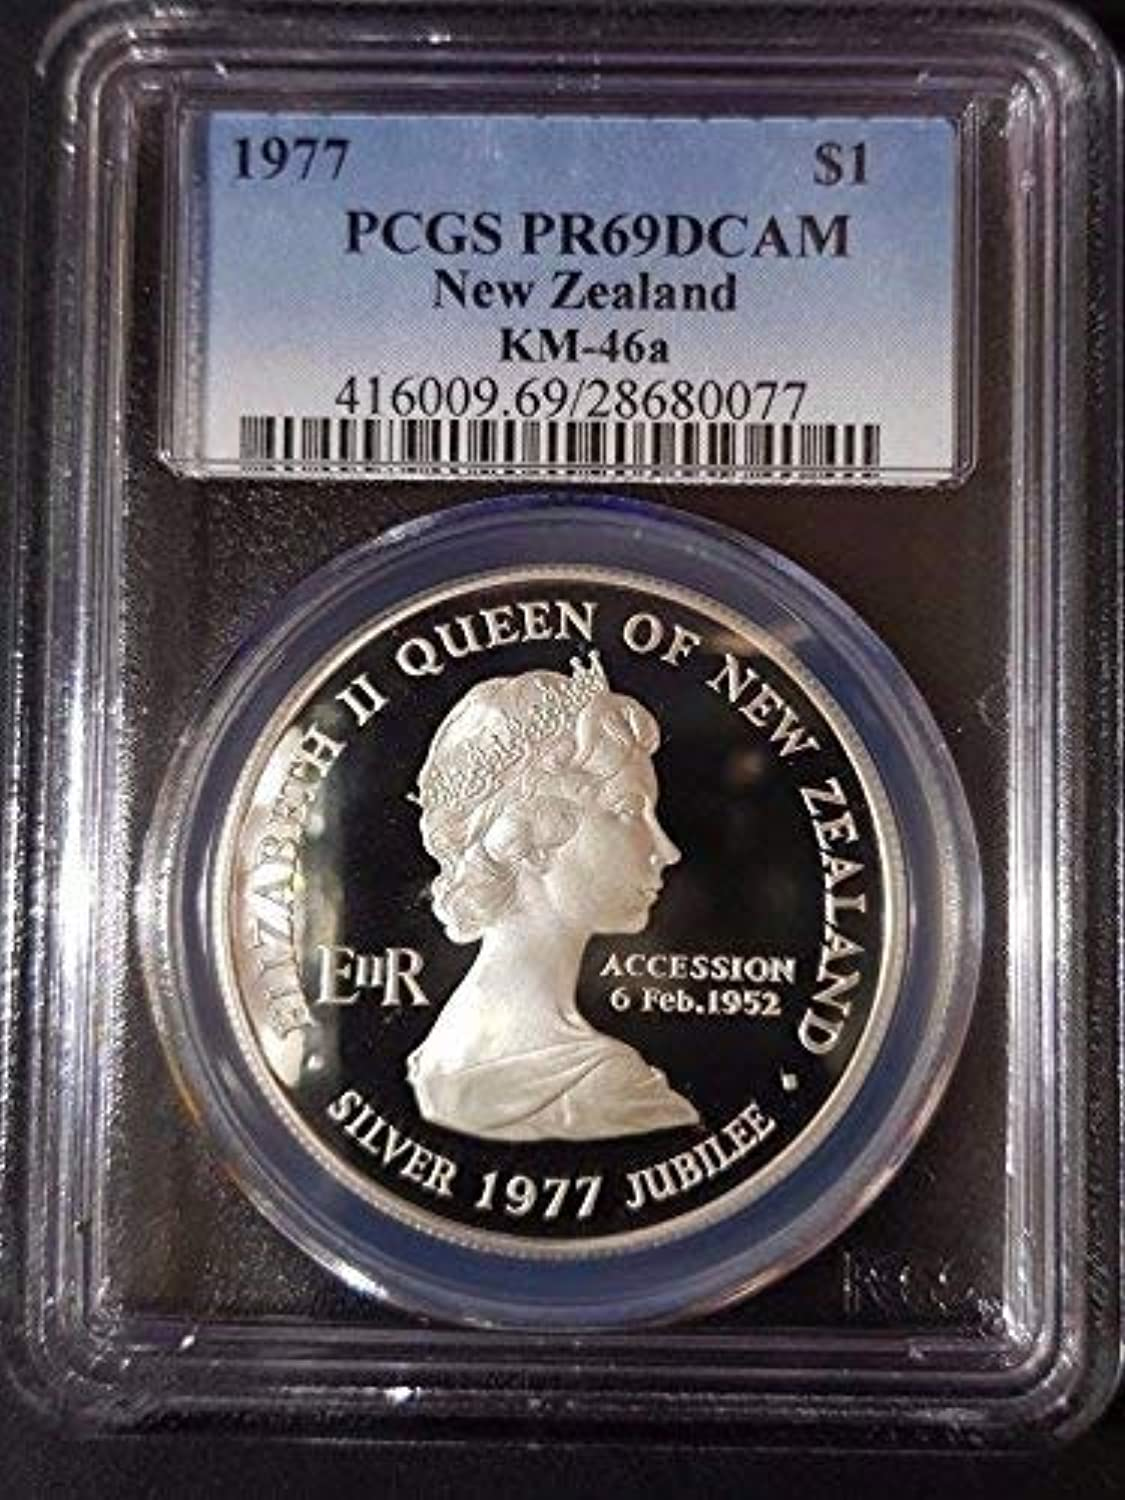 Pcgs 1977 New Zealand  1 Waitangi Day Jubilee Coin Silber Proof Pr69Dcam Km-46A